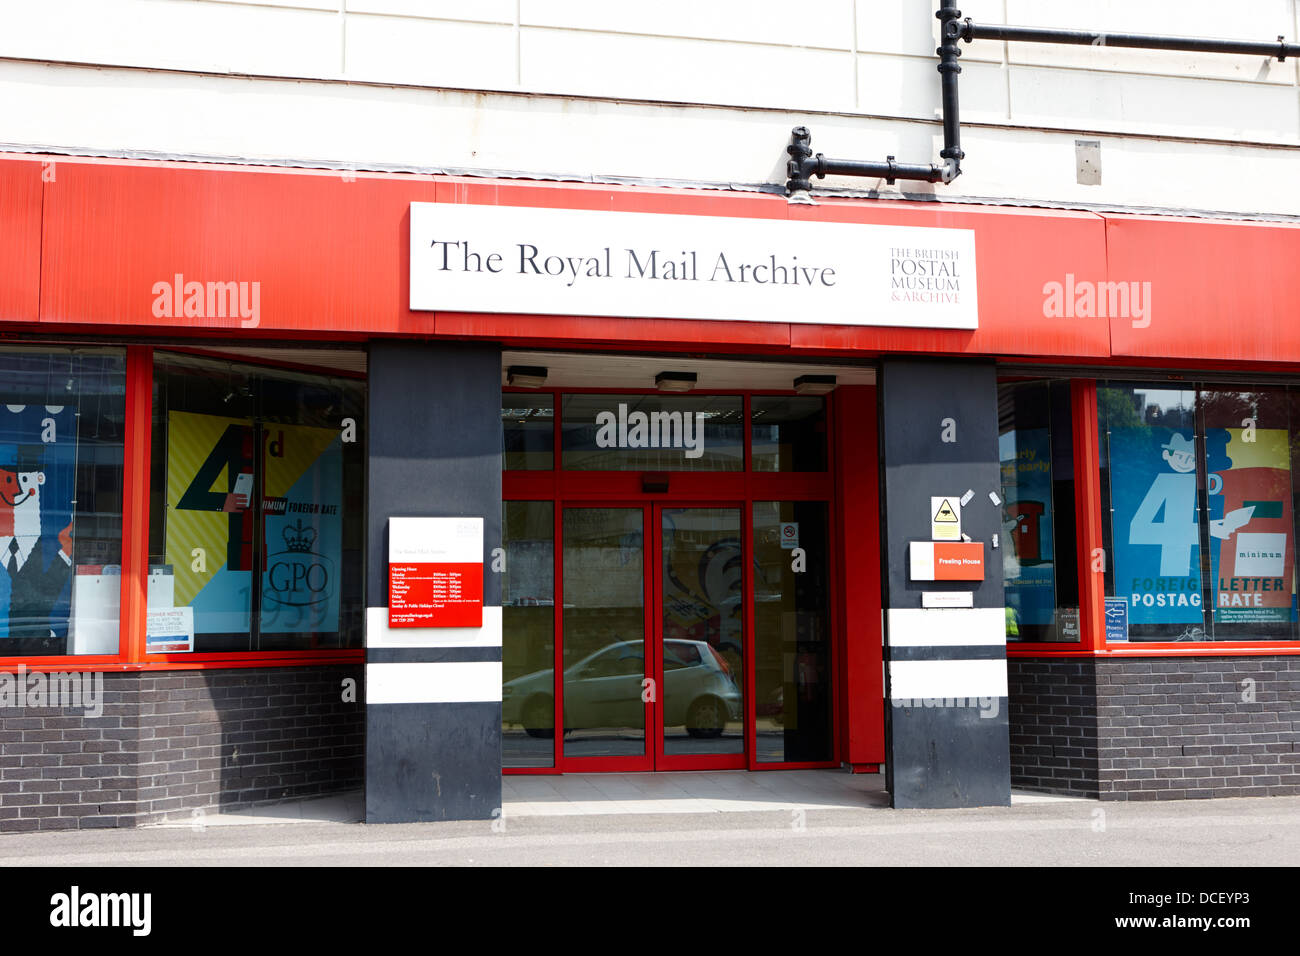 the royal mail archive and british postal museum at mount pleasant sorting office London England UK - Stock Image